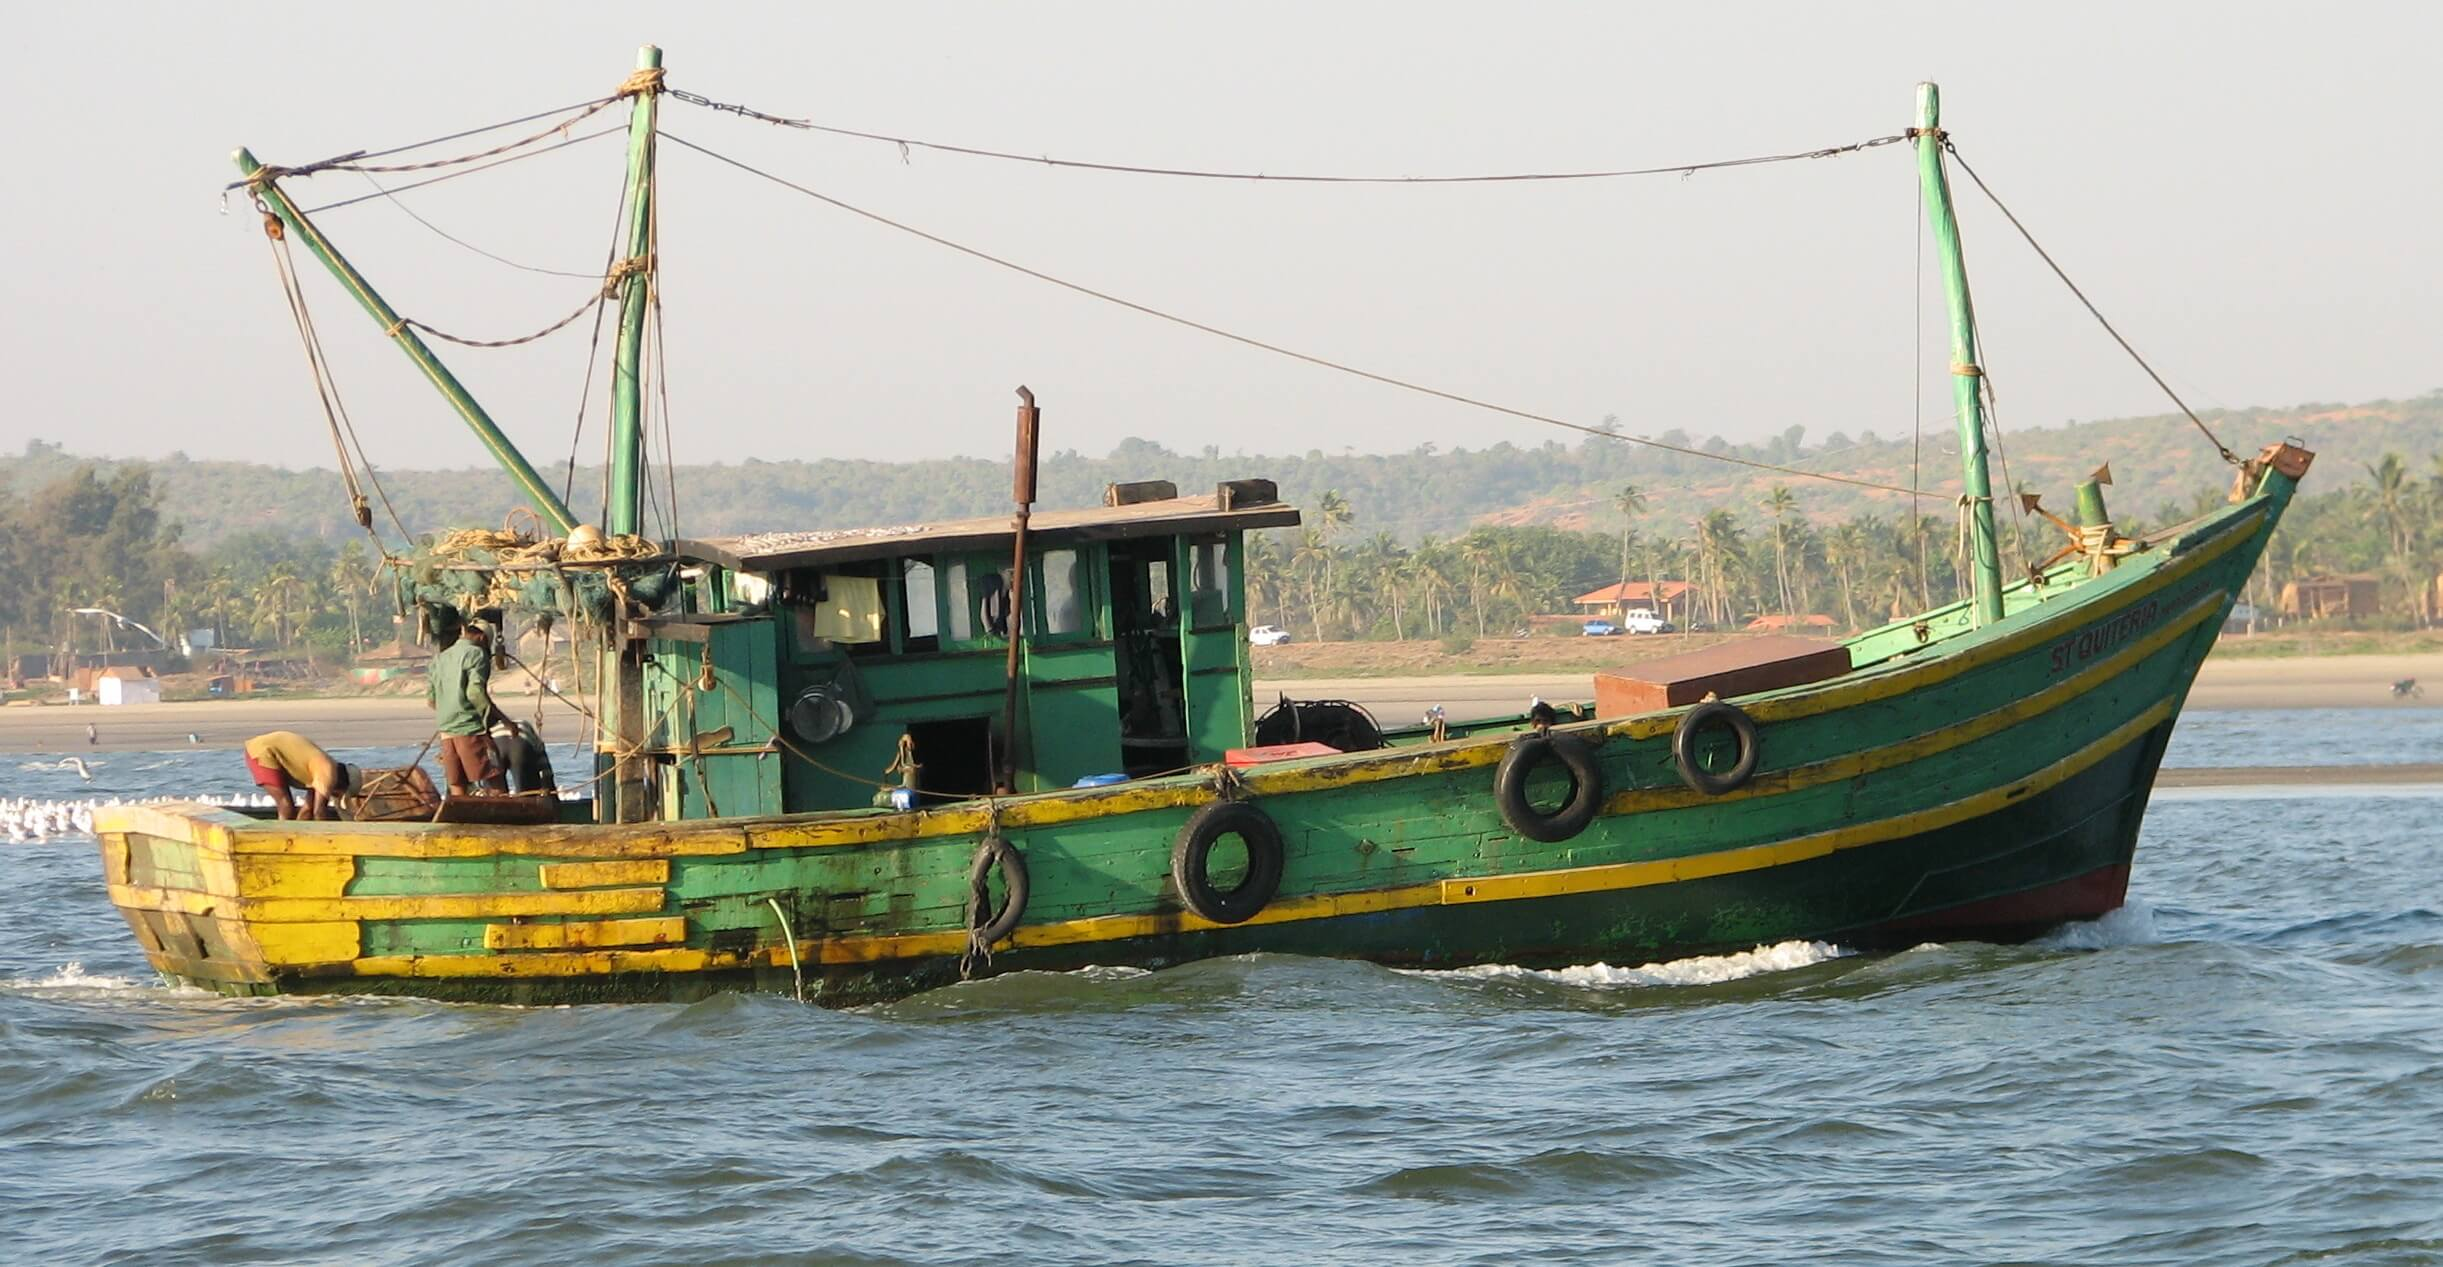 The Plight of Indo-Pak Fishermen and the Need to Appreciate Economic Rights